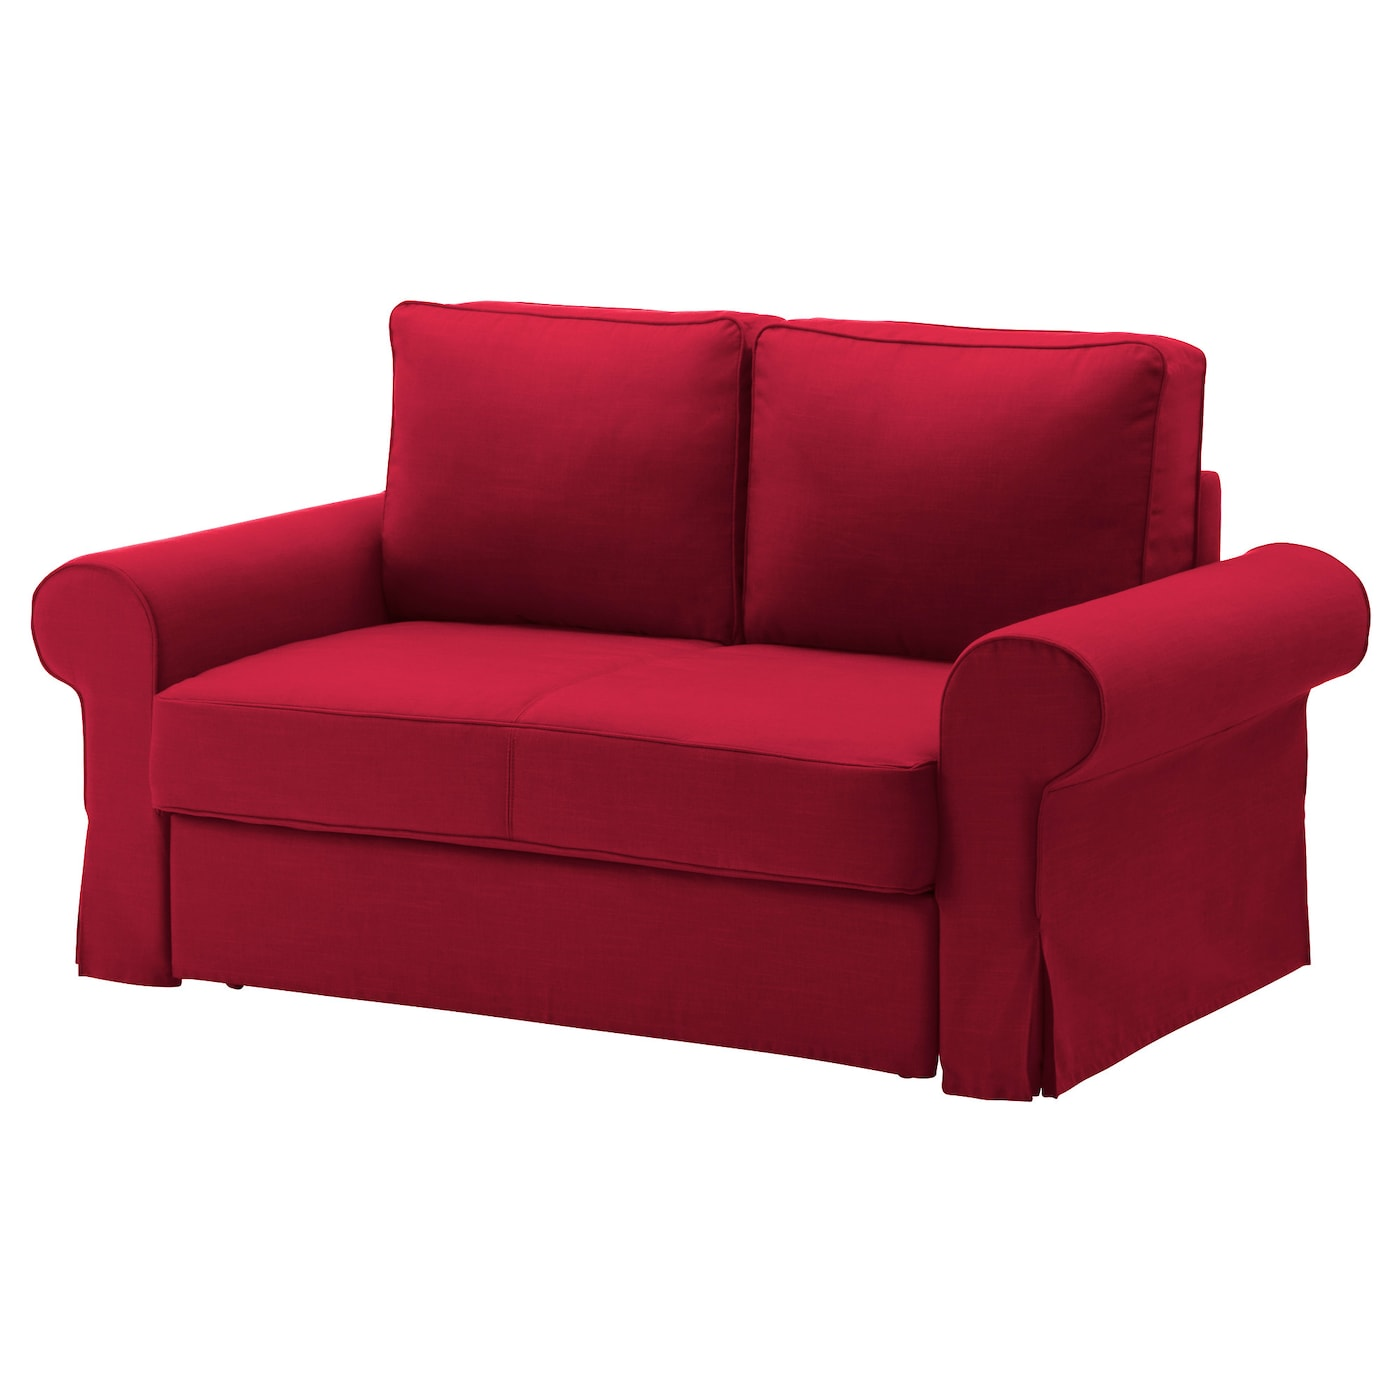 backabro two seat sofa bed nordvalla red ikea. Black Bedroom Furniture Sets. Home Design Ideas